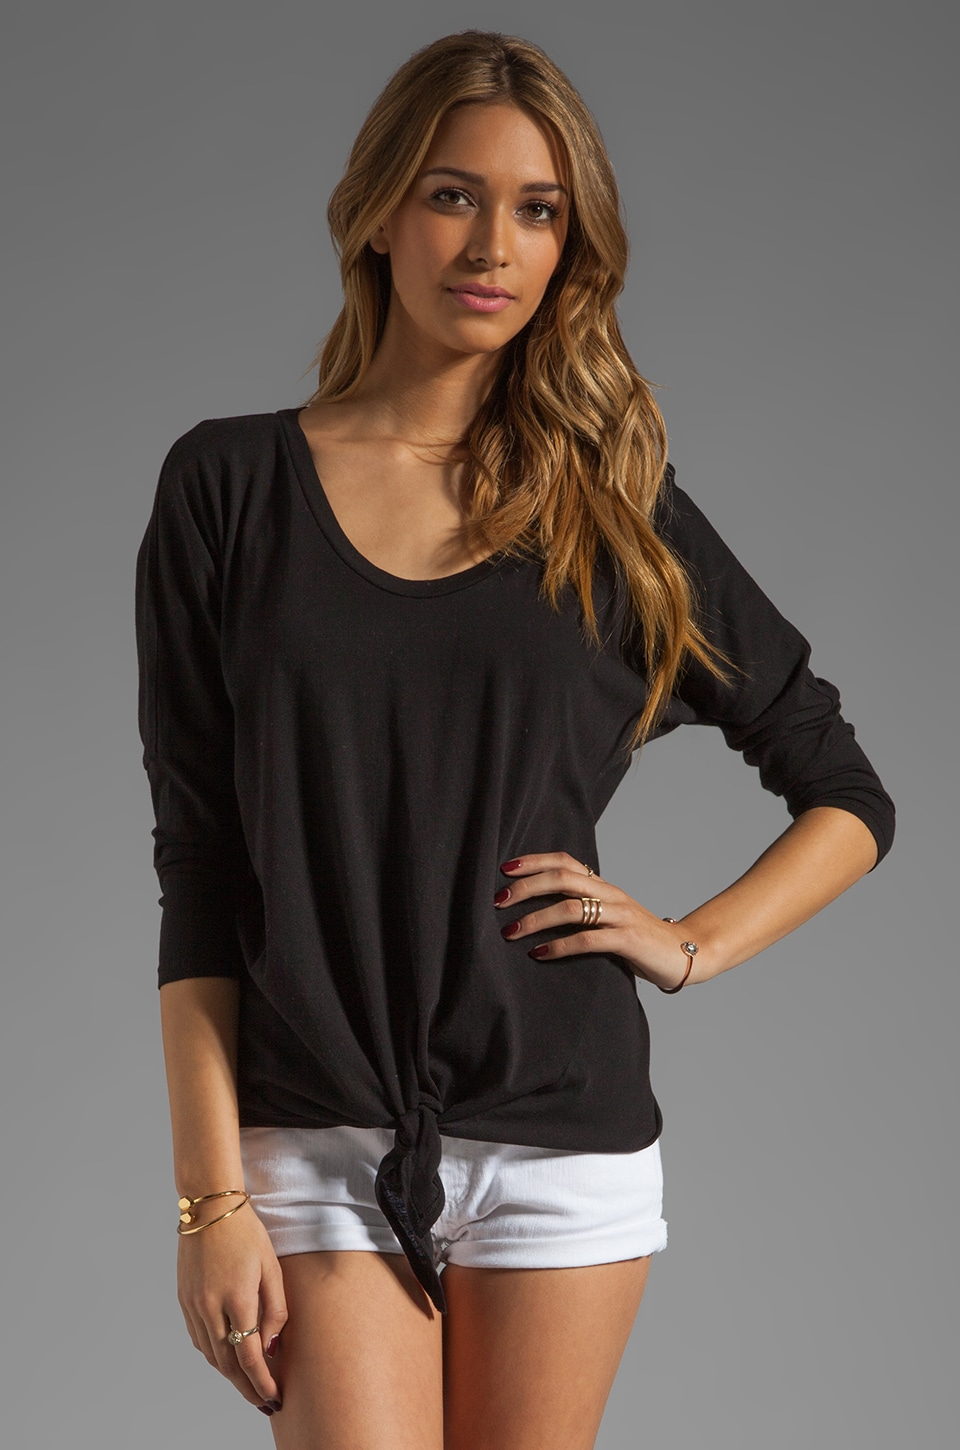 C&C California 3/4 Sleeve Dolman Tie-Front Tee in Black